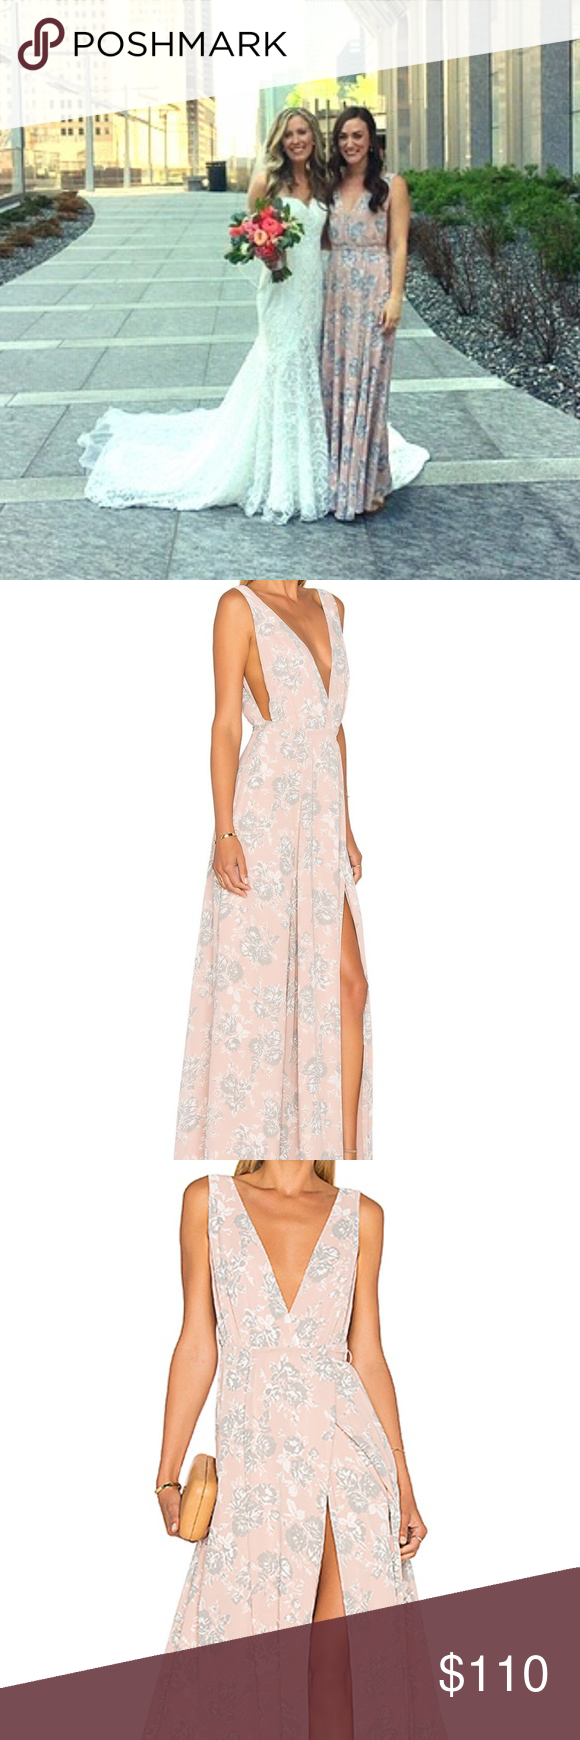 Lovers Friends Leah Gown Floral My Posh Picks Gowns Lovers